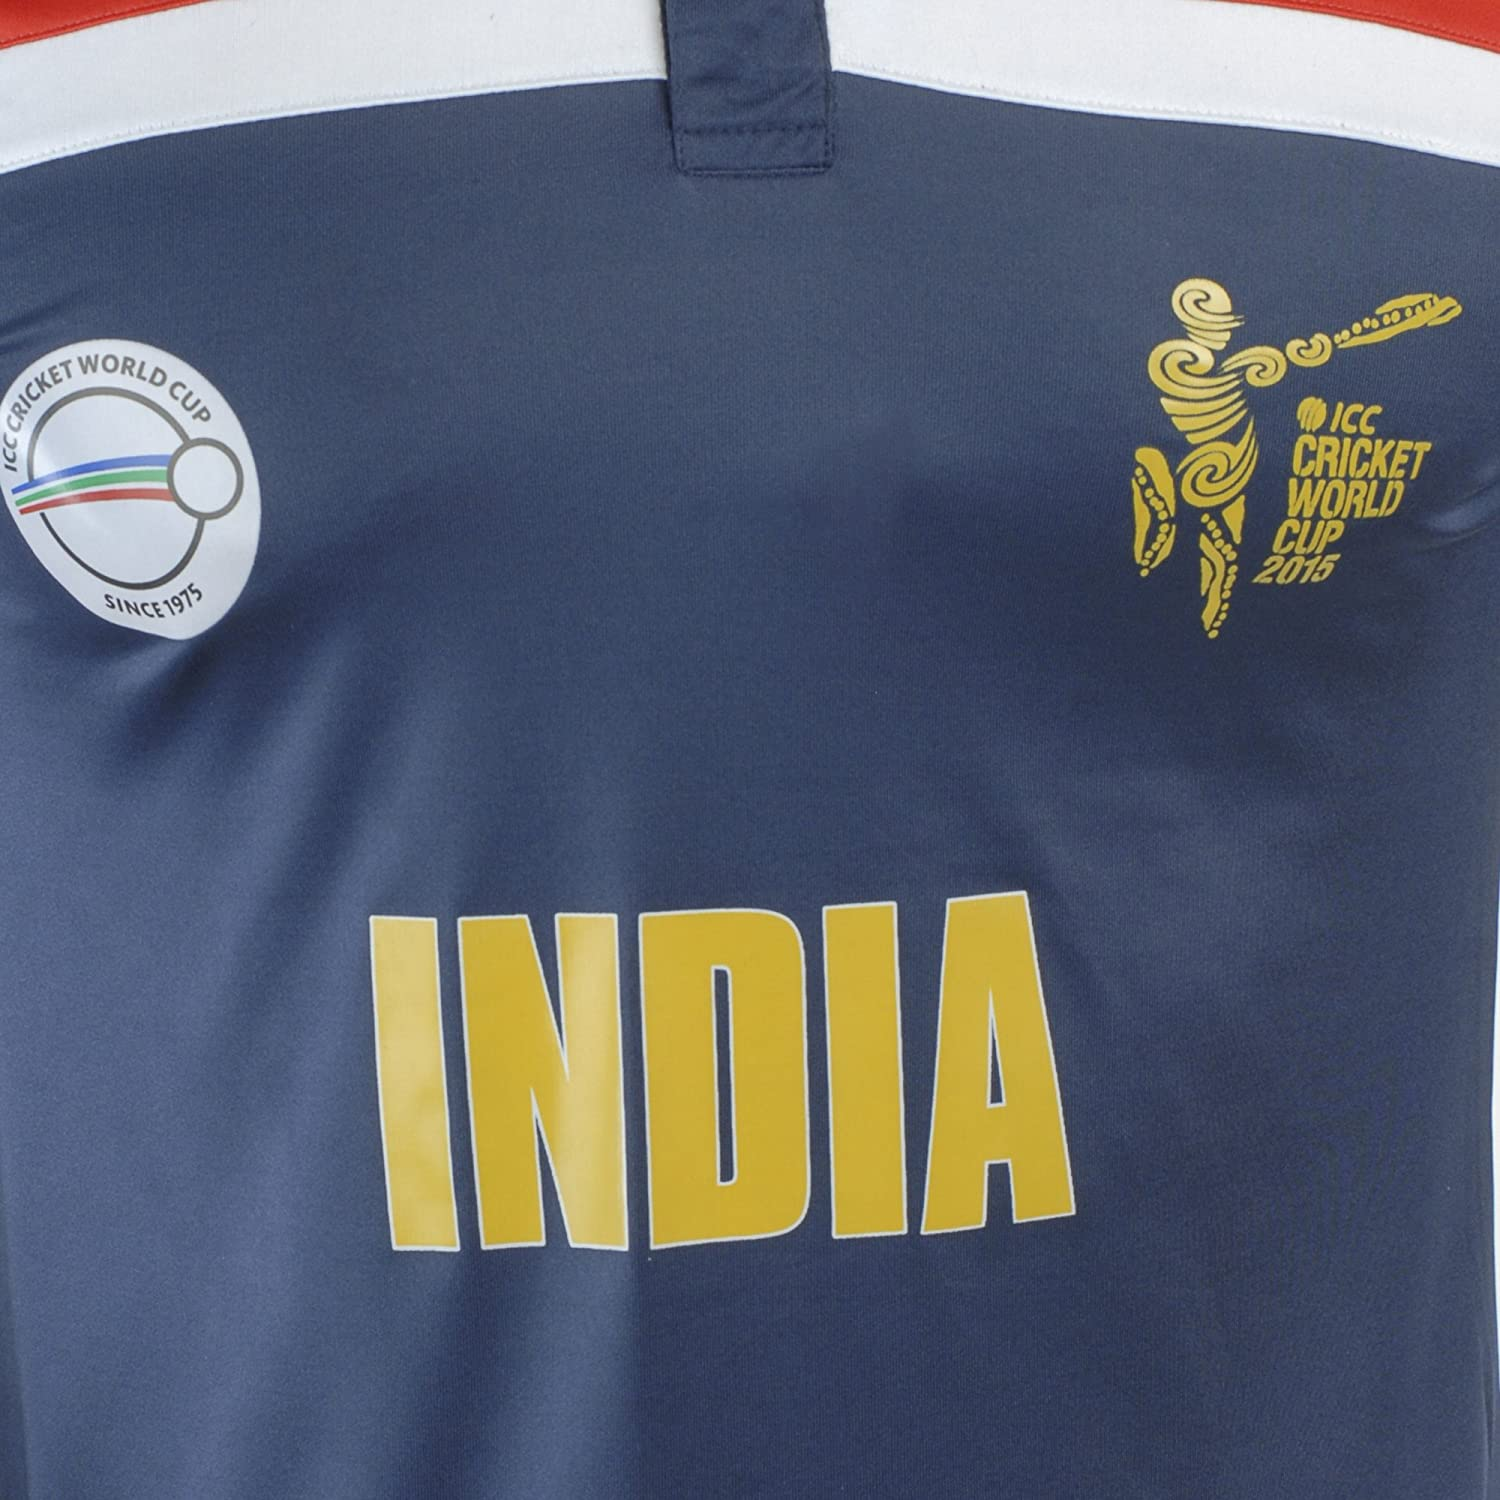 84edbc0b38e Cricket World Cup T Shirts – EDGE Engineering and Consulting Limited